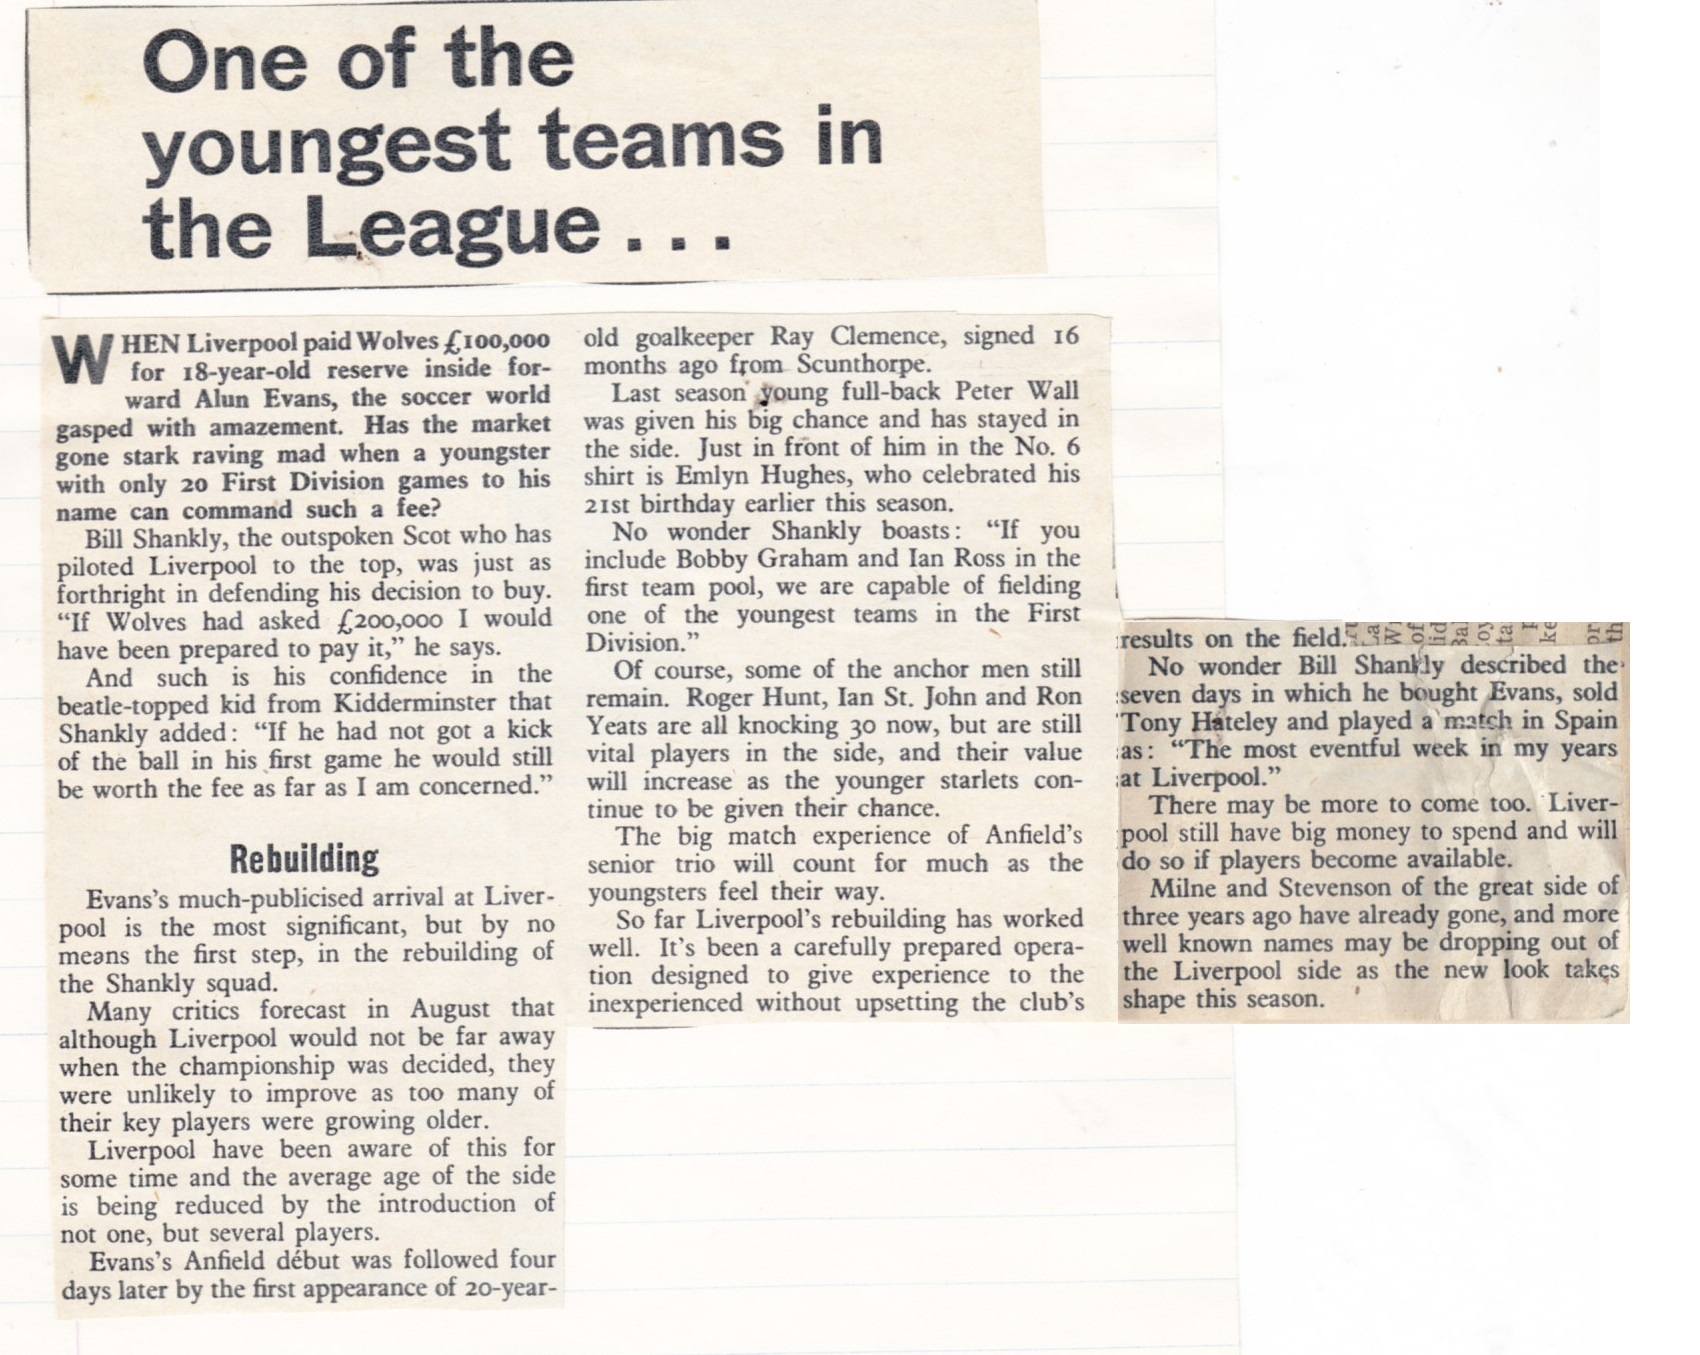 I would have paid 200,000 pounds, says Shankly - 1968